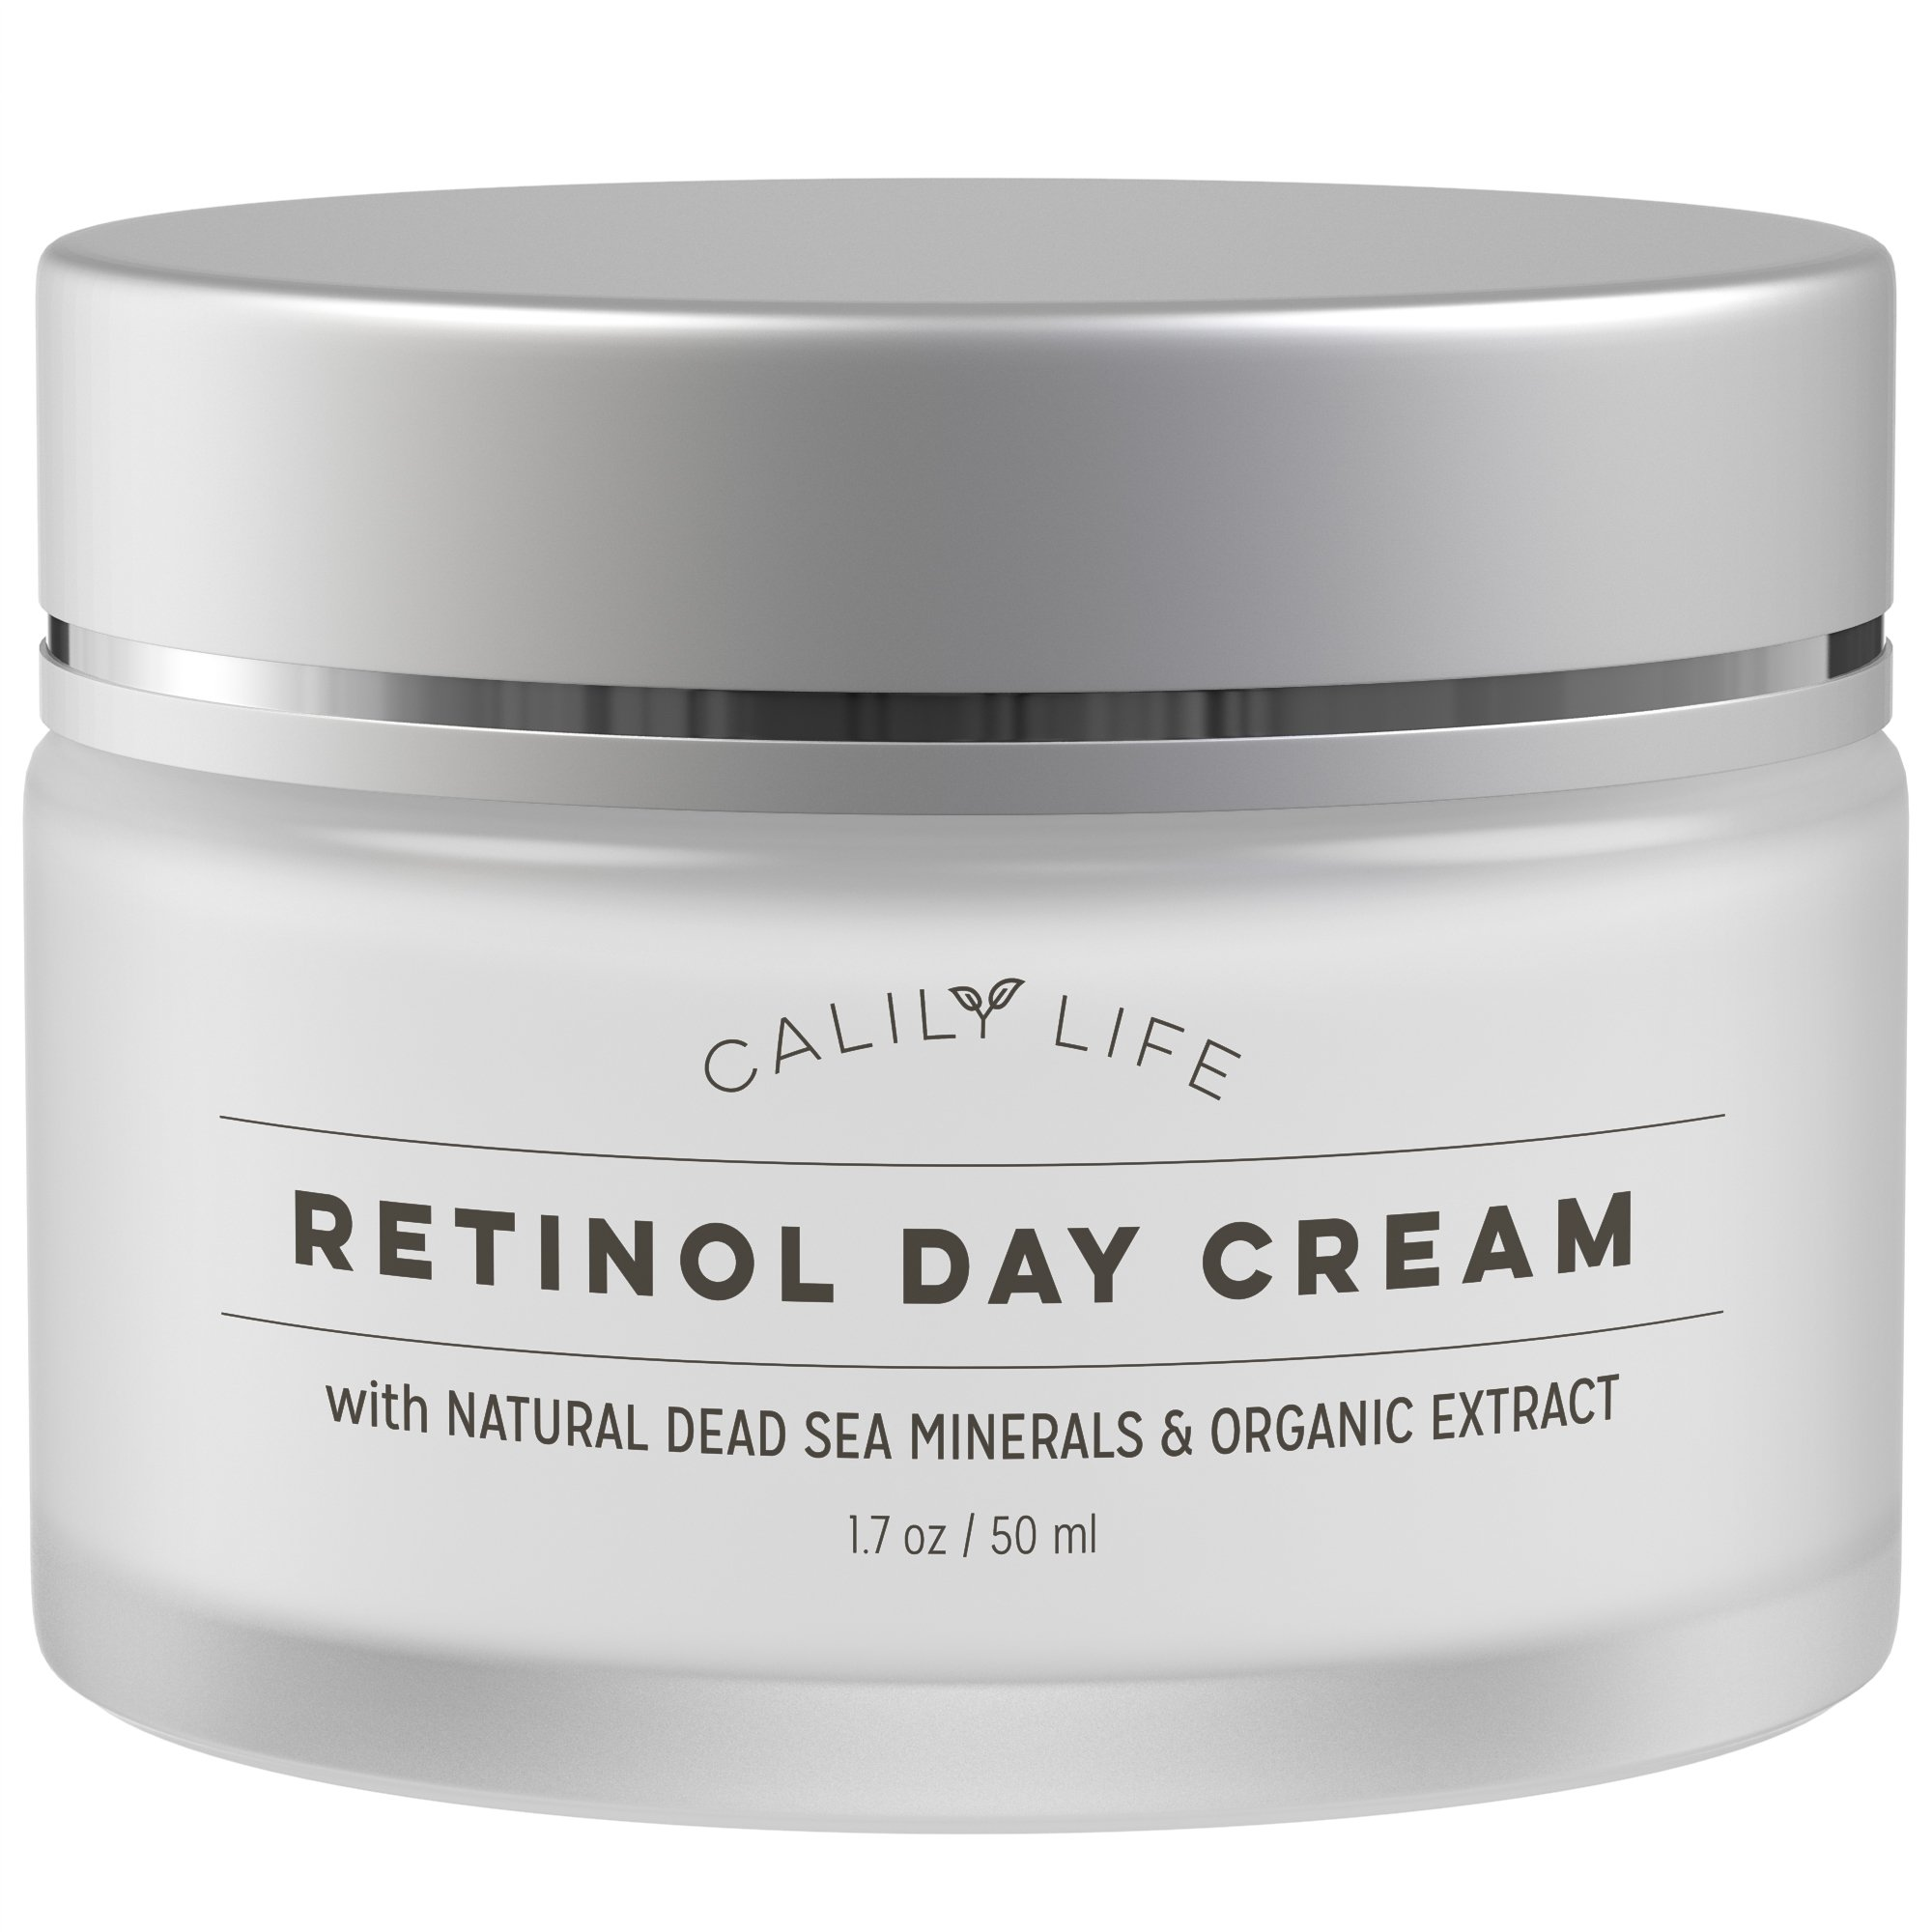 Calily Life Organic Anti-Aging Retinol Day Cream with Dead Sea Minerals, 1. 7 Oz. – Anti-Wrinkle, Hydrates, Smooths, Regenerates and Strengthens - Non-Greasy, Fast Absorbing [ENHANCED]